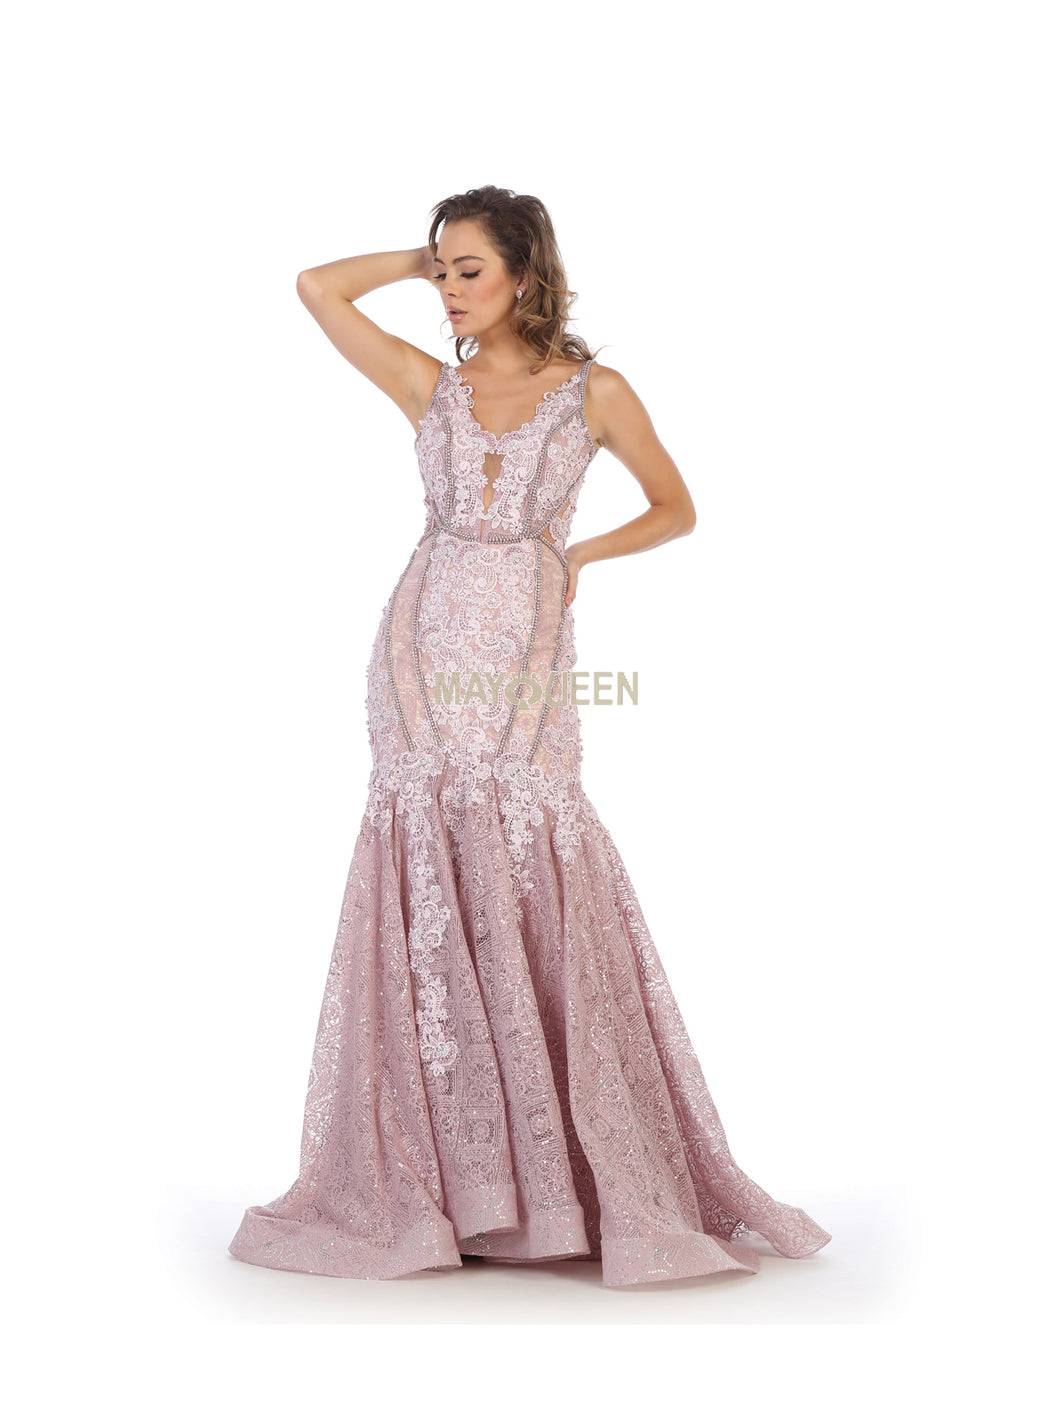 Mayqueen Size Chart E MQ 7735 - Lace Embellished V-Neck Mermaid Gown - Diggz Prom